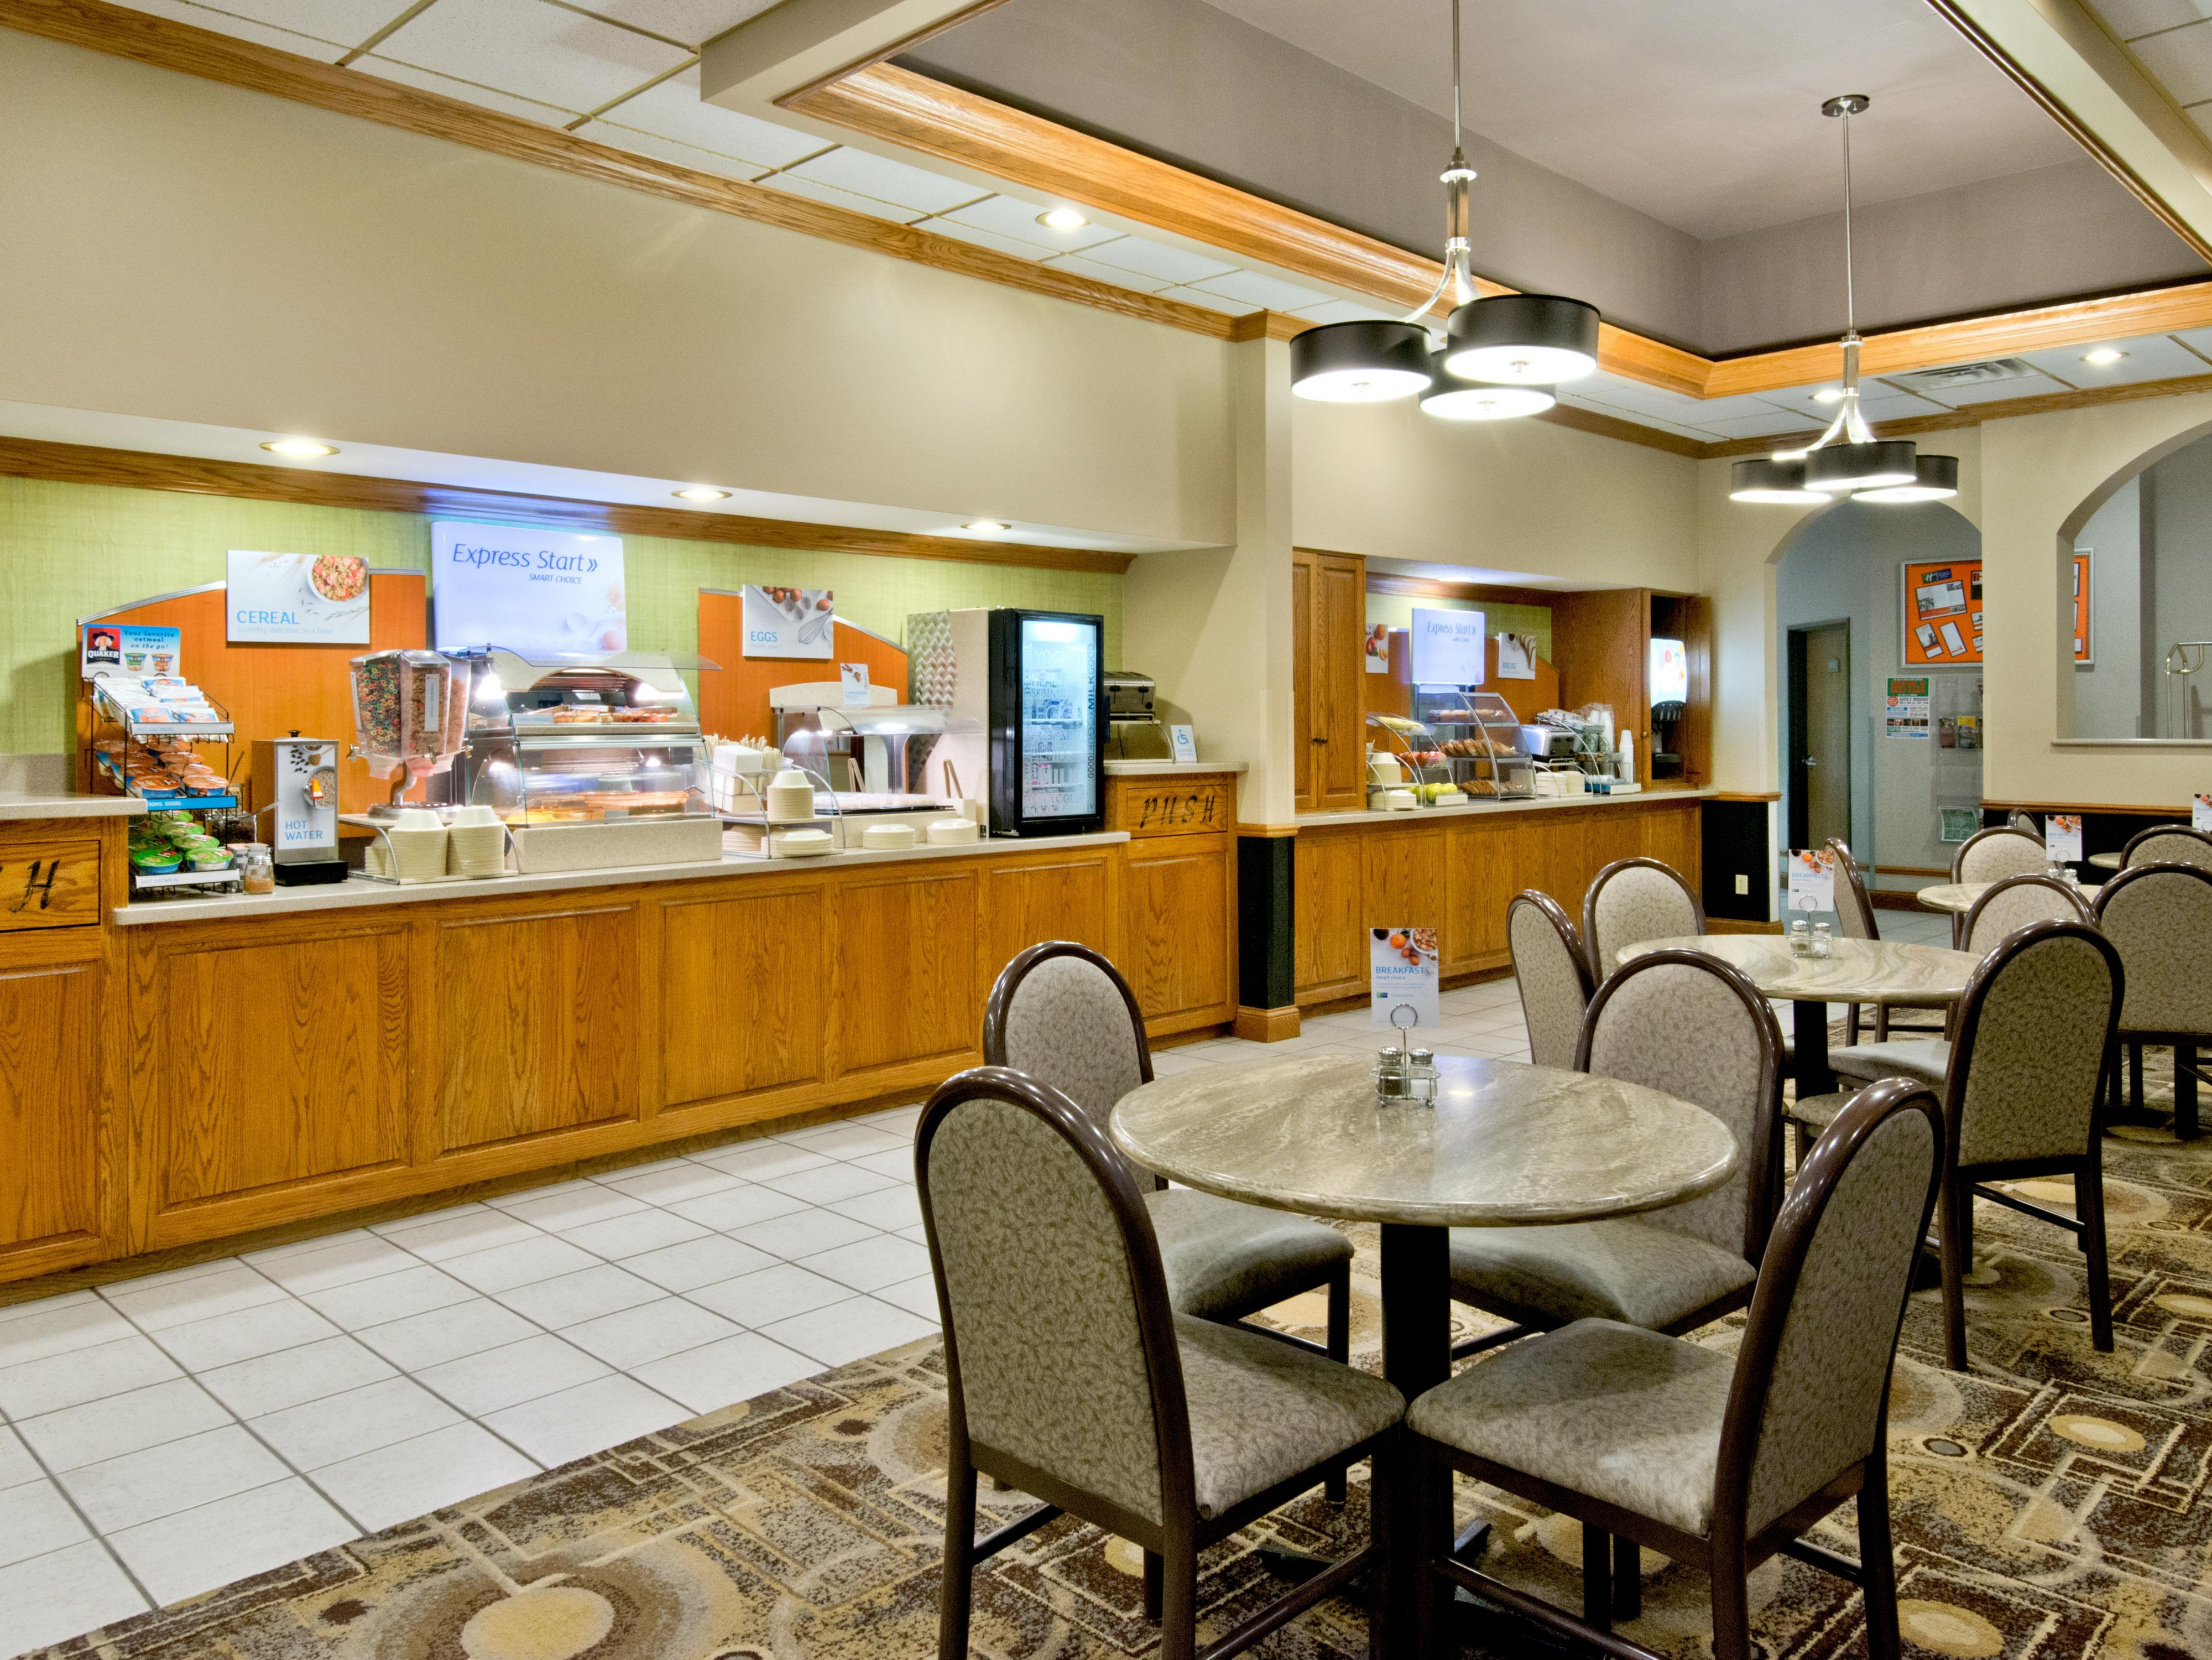 Express Start Breakfast Bar - Holiday Inn Express North Platte